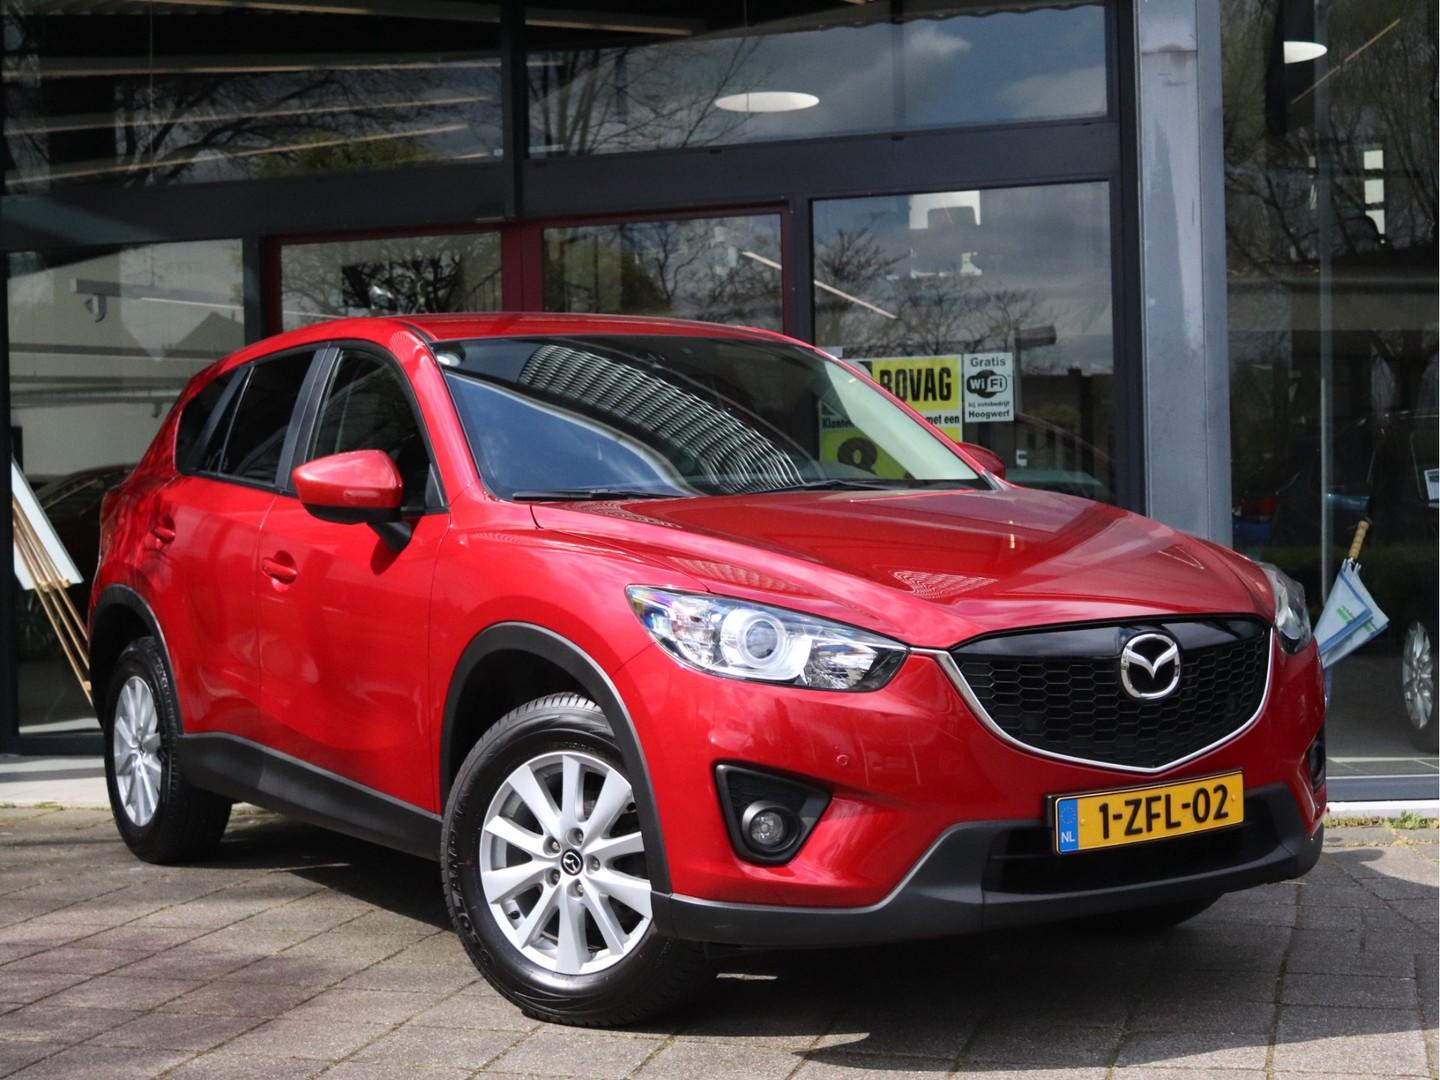 Mazda Cx-5 2.0 limited edition